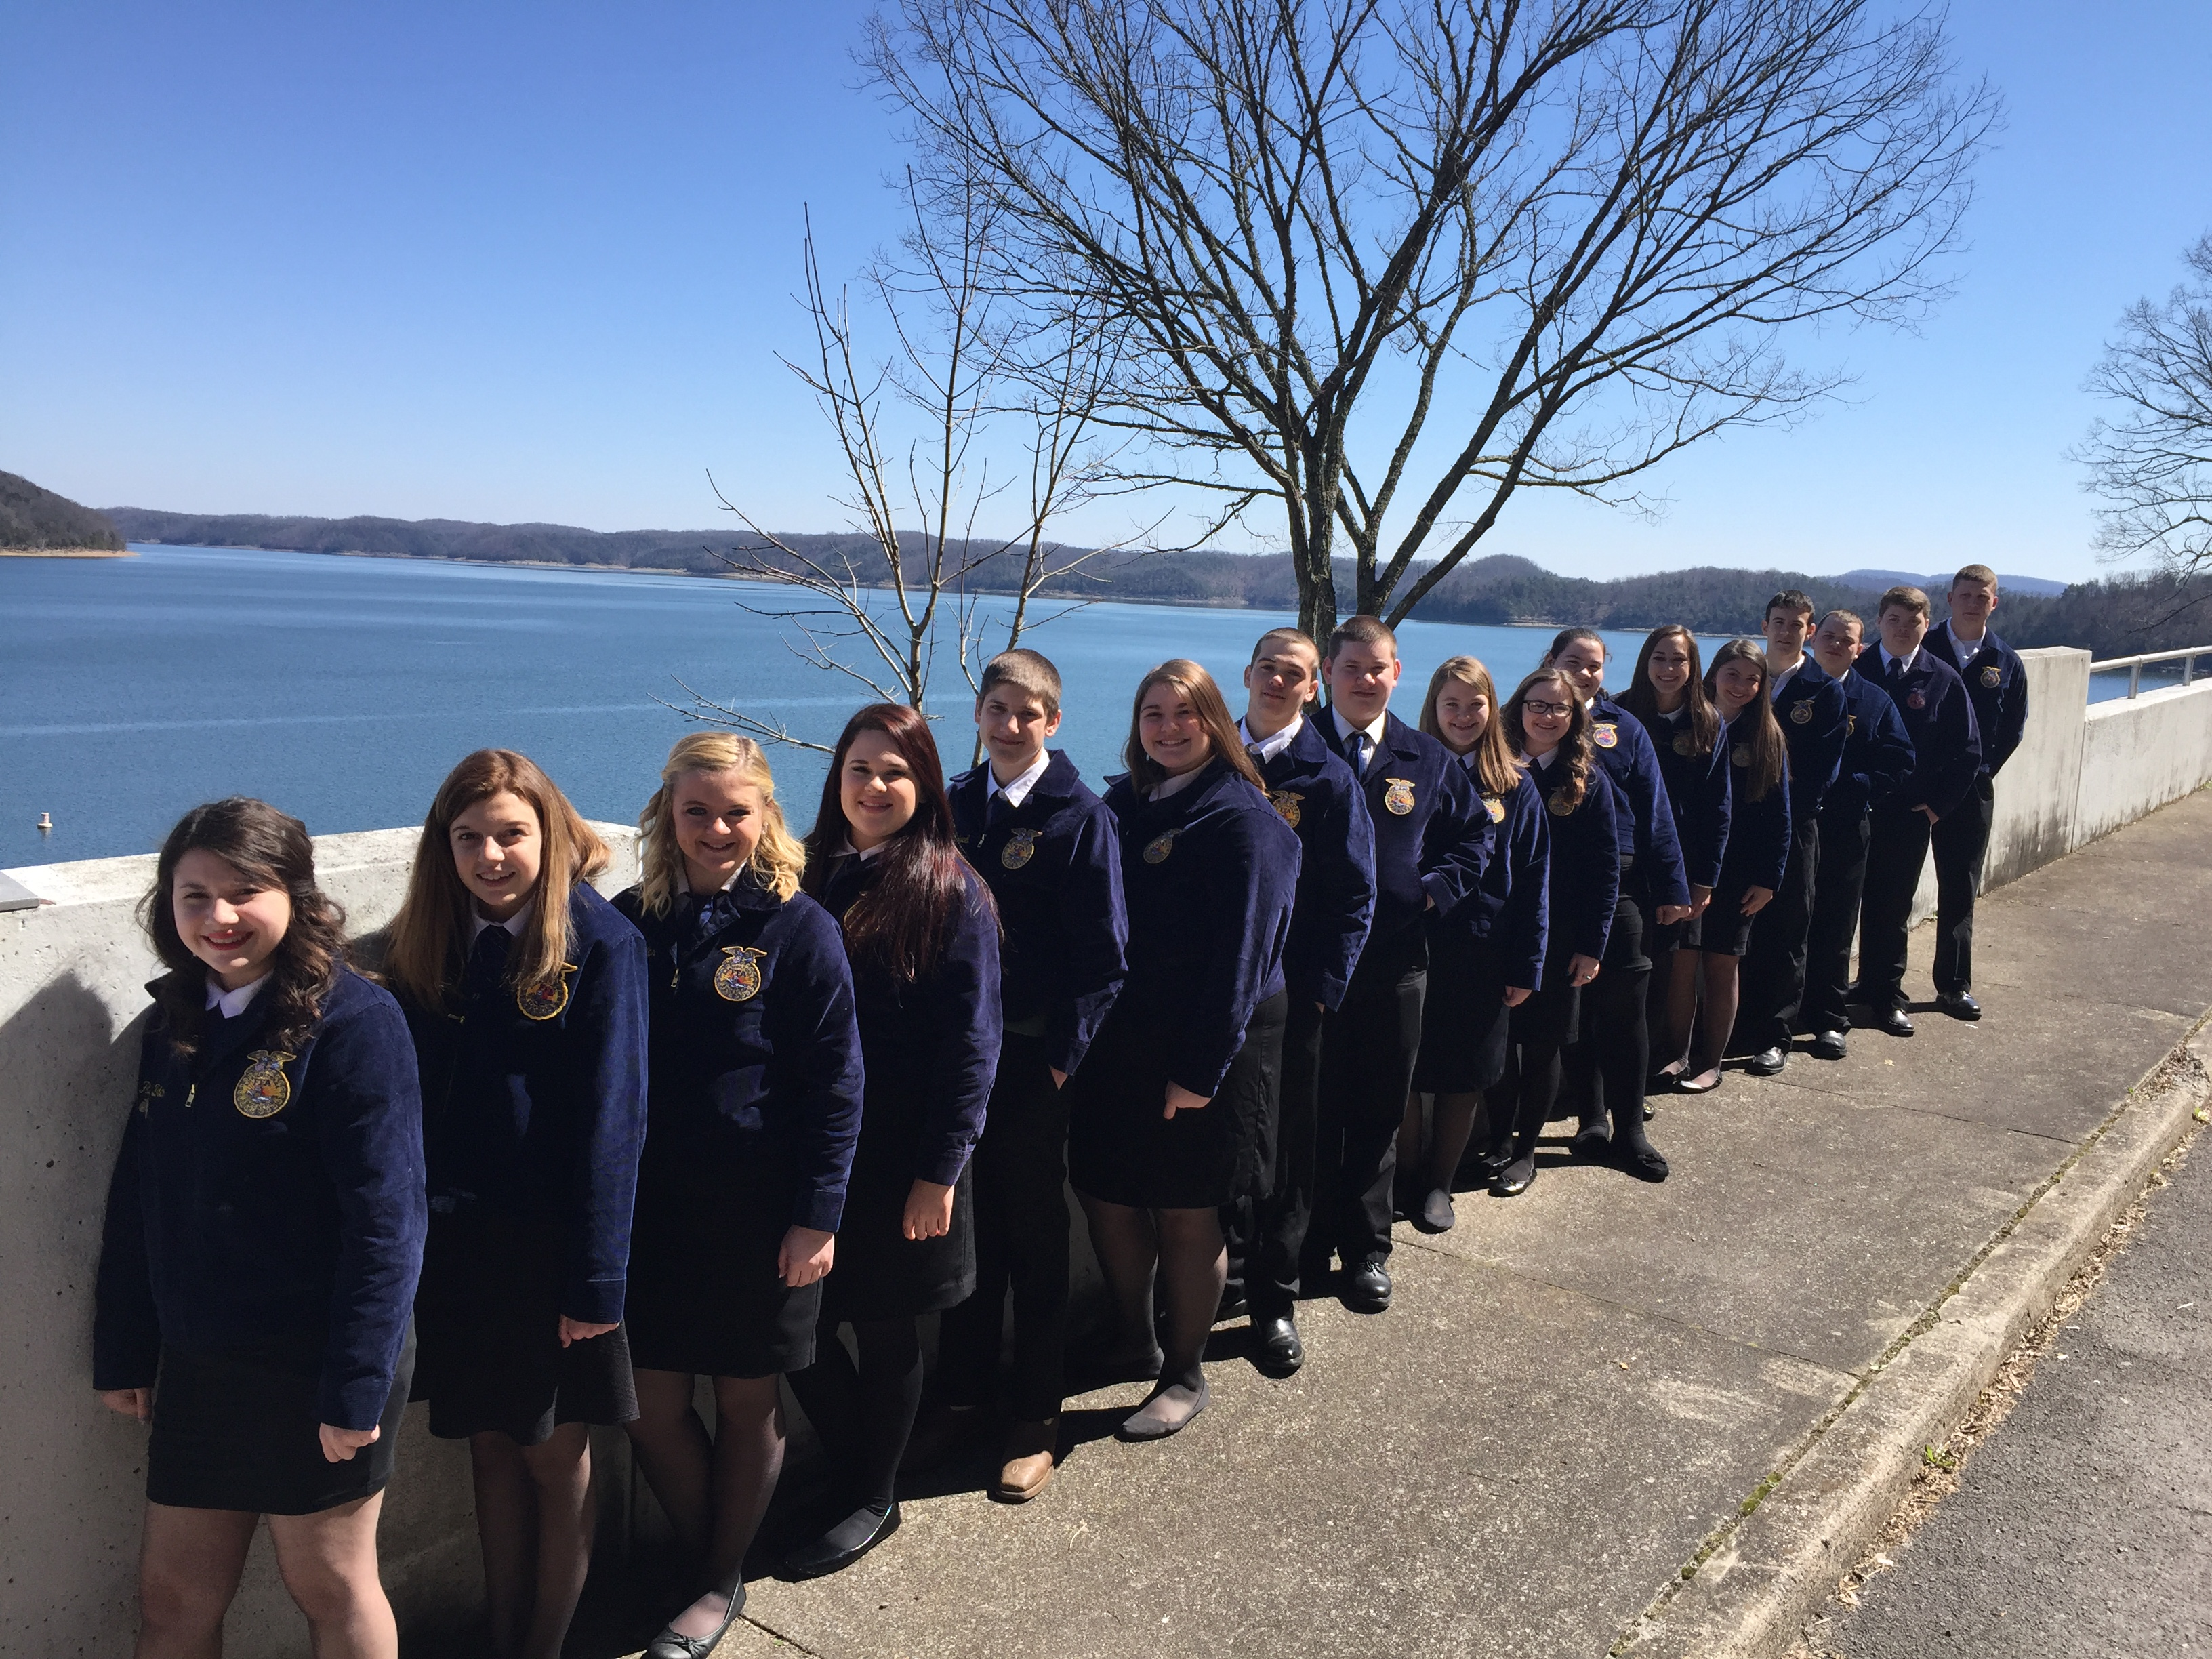 FFA members enjoyed a rest stop at scenic Lake Cumberland